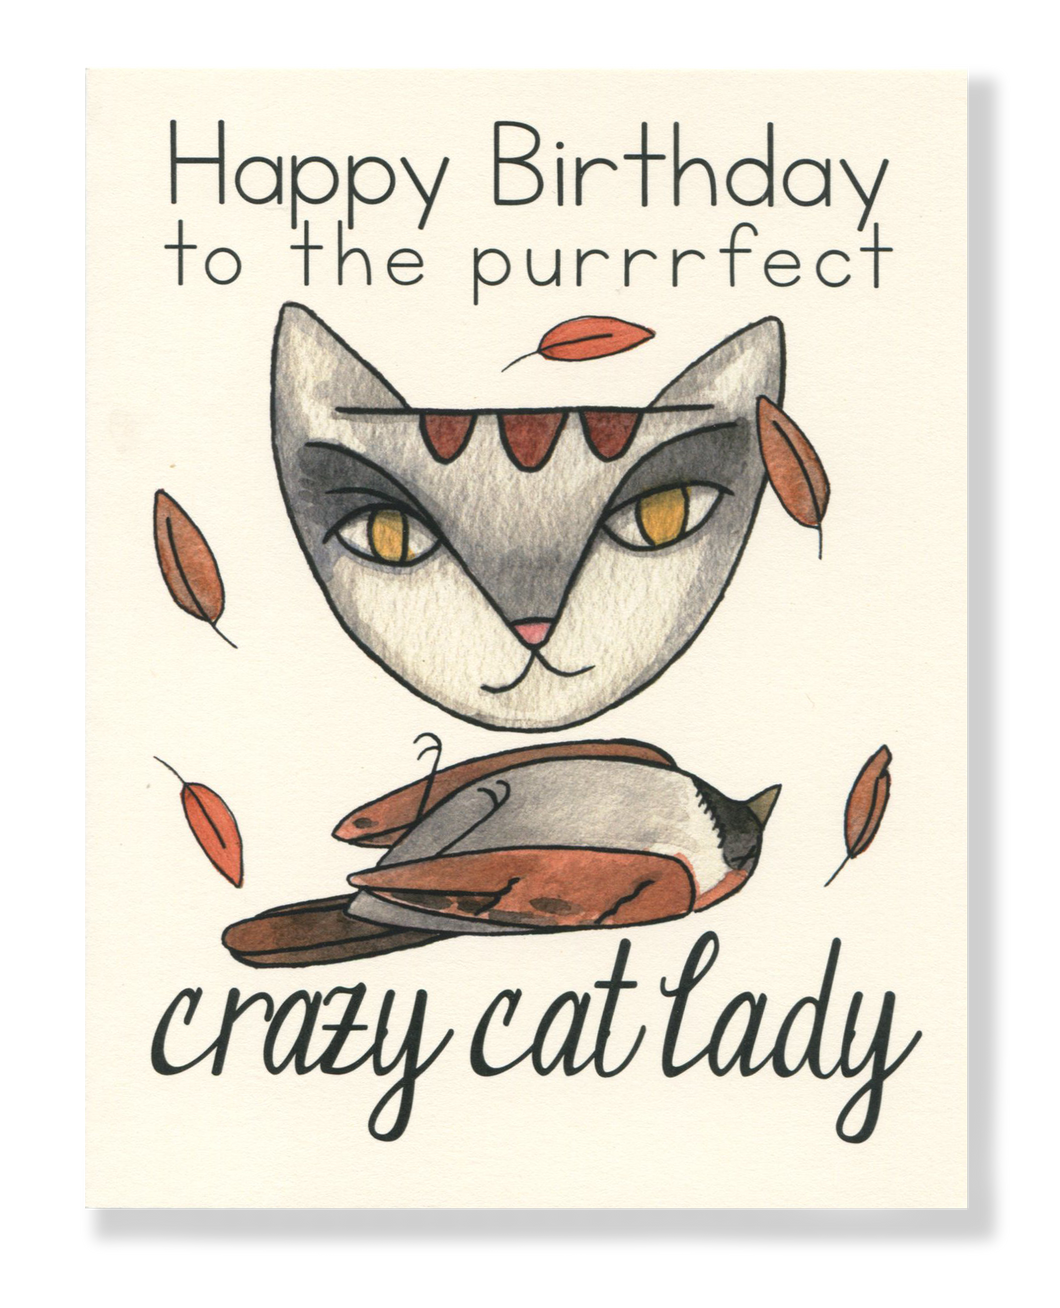 Happy Birthday! Crazy Cat Lady card